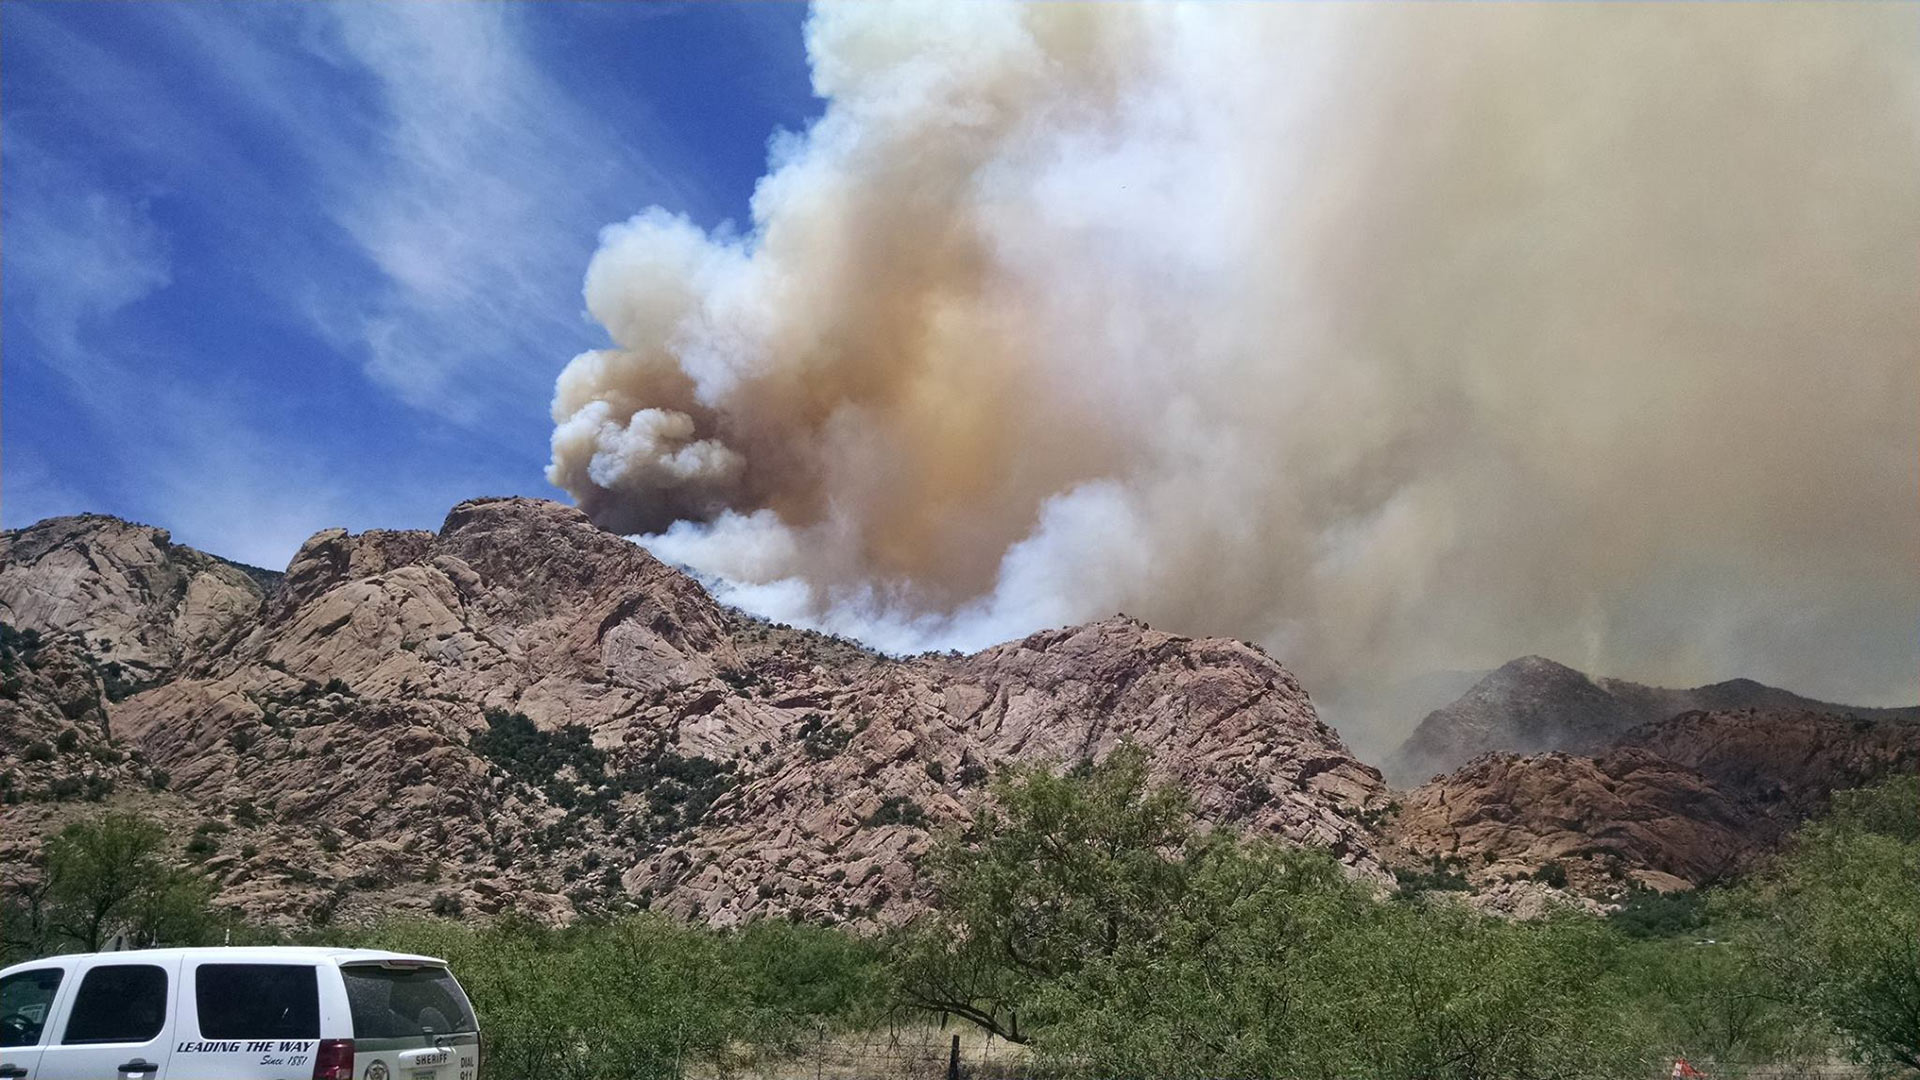 Cochise Stronghold in the Dragoon Mountains, where the Lizard Fire had burned 15,131 acres by midday June 13, 2017. Photo from June 10.